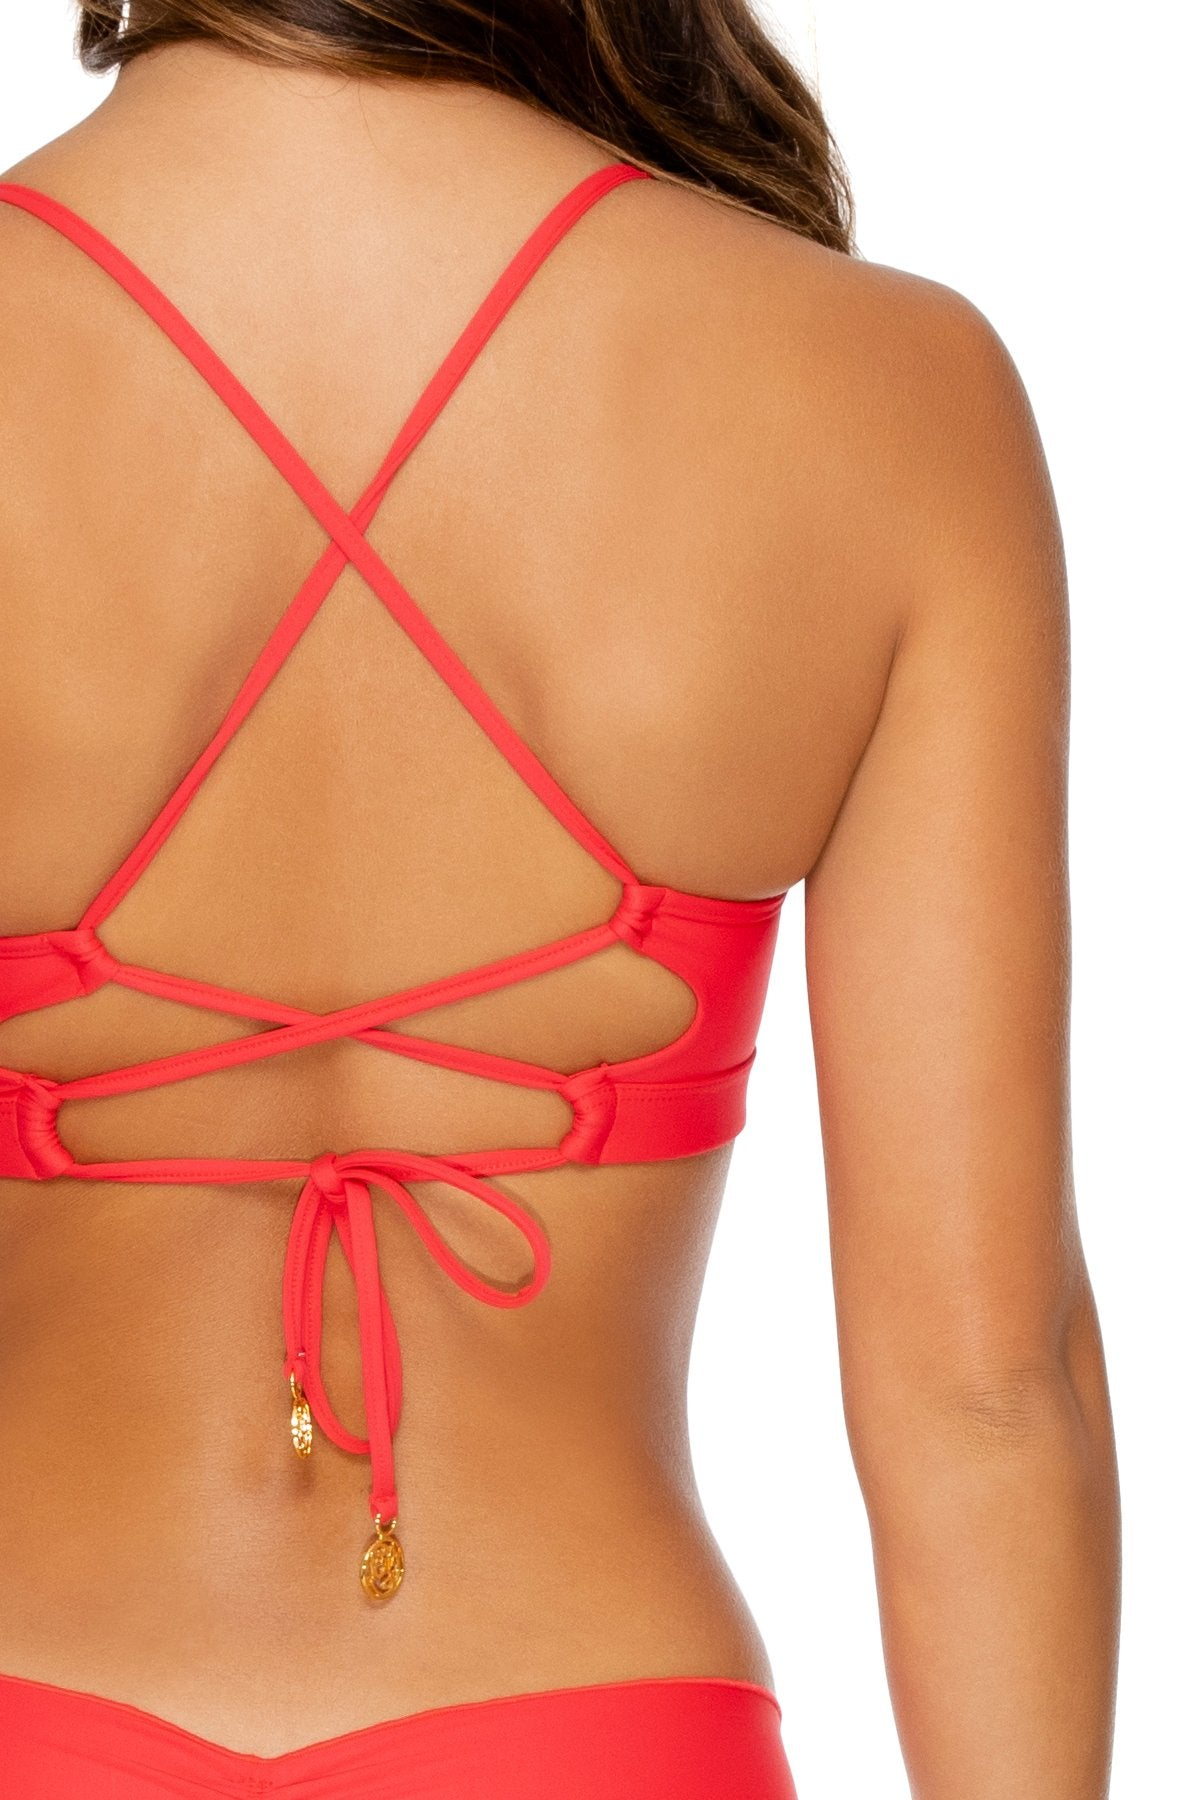 NOCHES DE SEVILLA - Underwire Top & Wavey Ruched Back Brazilian Bottom • Rojo